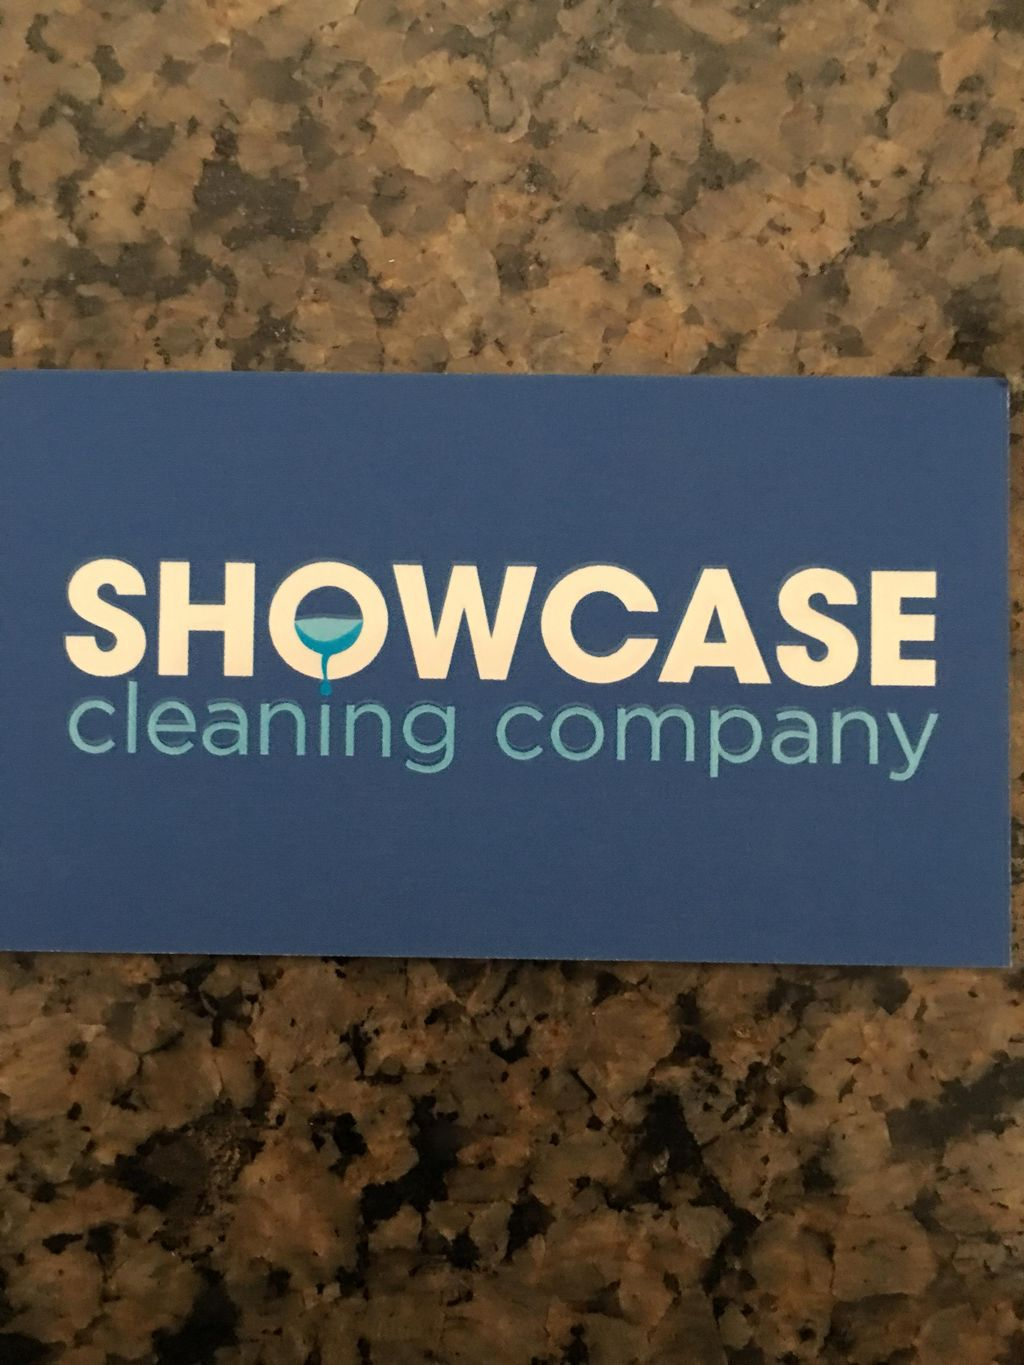 The Showcase Cleaning Co